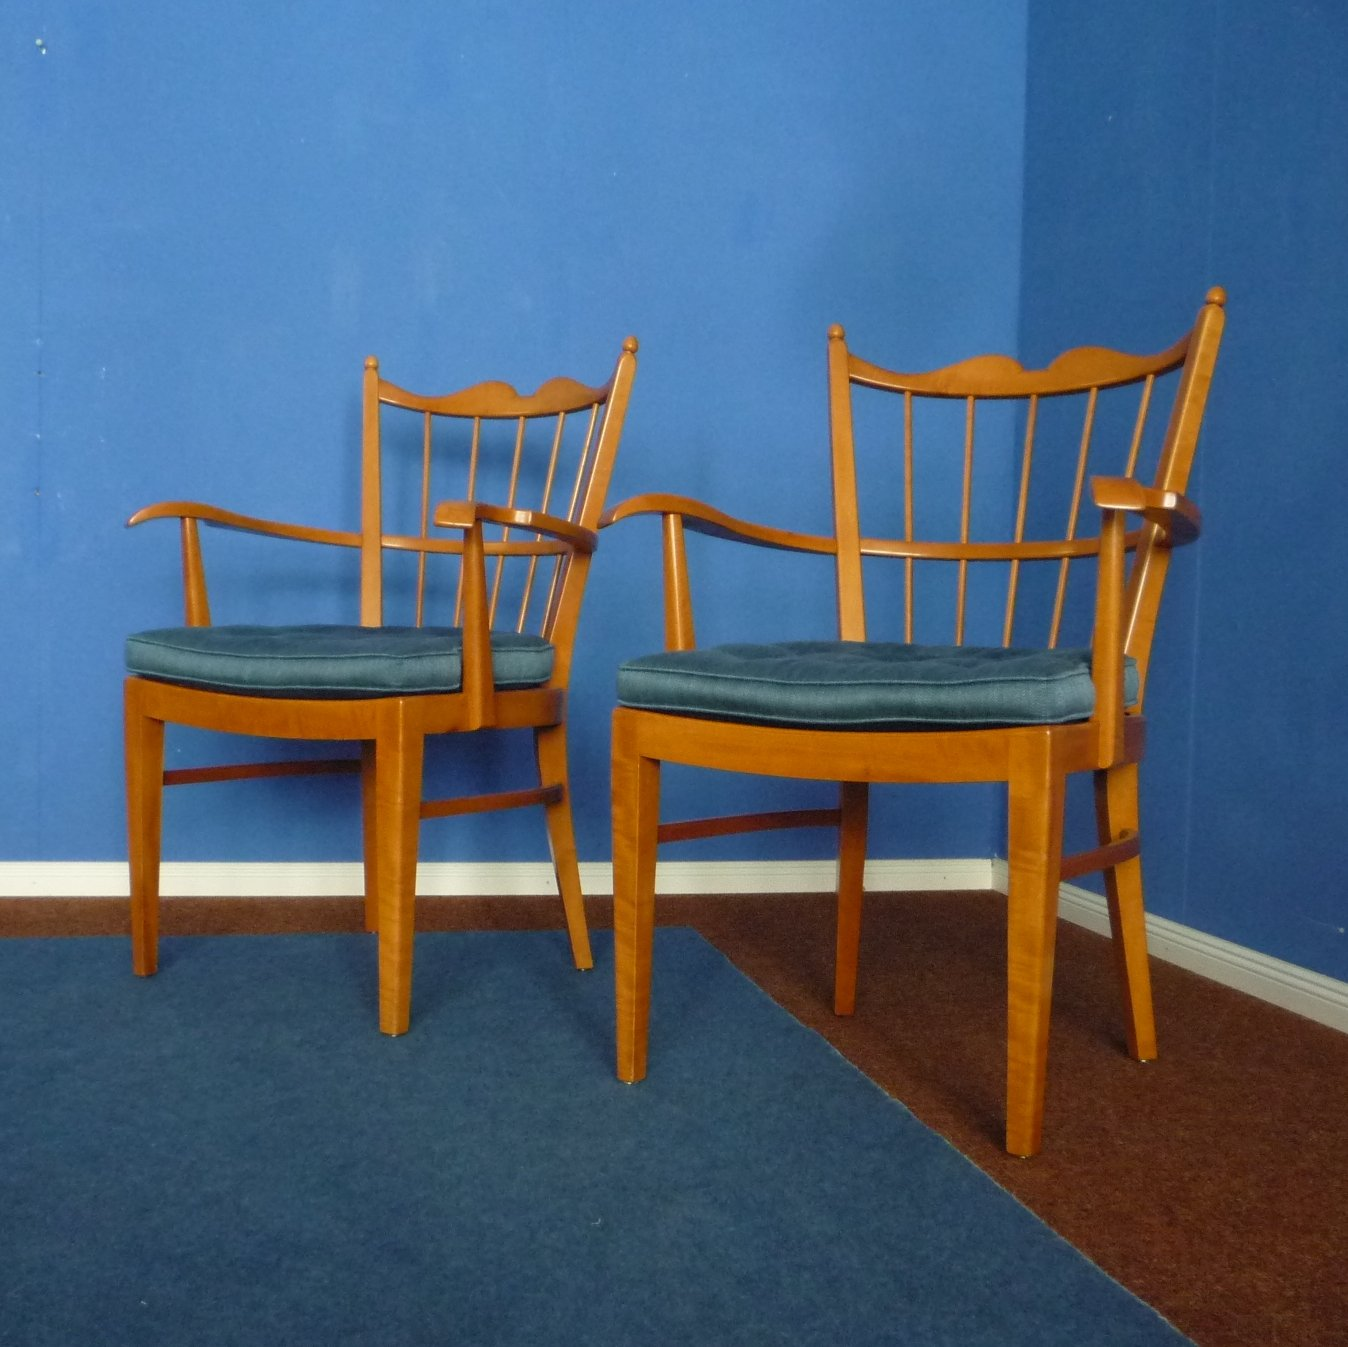 Cherry Wood Chairs By Schildknecht Stuttgart 1956, Set Of Two